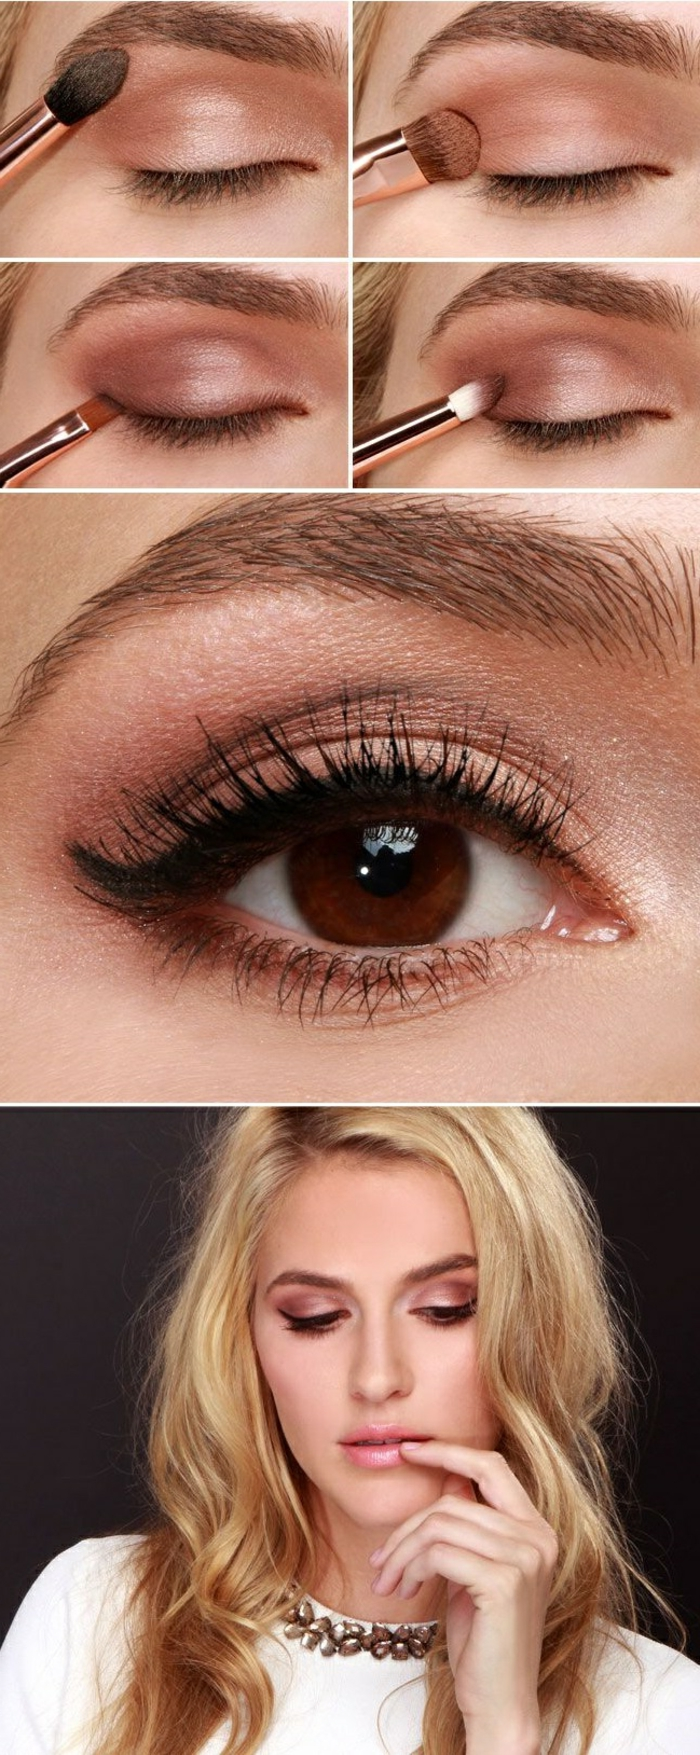 Béauté-maquillage-yeux-marrons-blonde-cheveux-longs